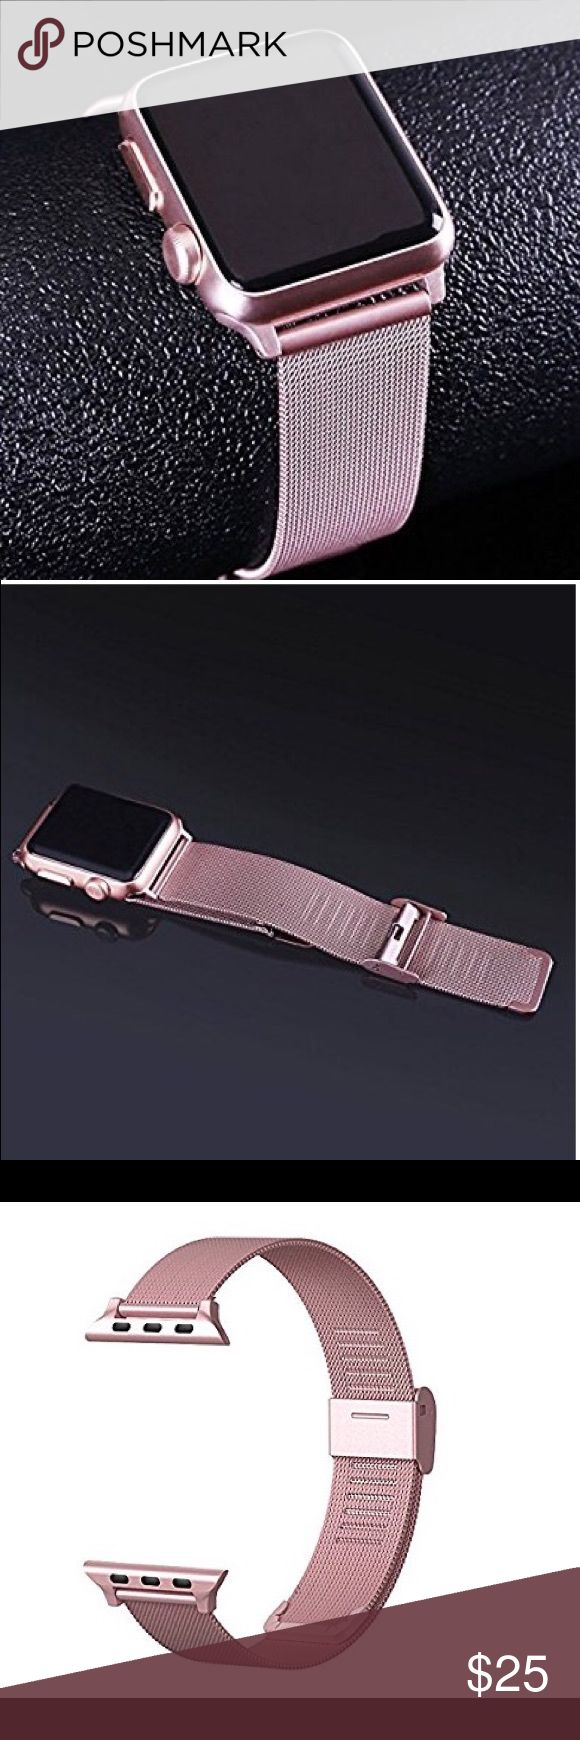 Apple Watch band Replacement band for Apple Watch series 1 or series 2 Apple iwatch 2 (Rose Gold 38MM) Milanese Loop Stainless Steel It look great on and fits perfectly ❤️❤️ Accessories Watches